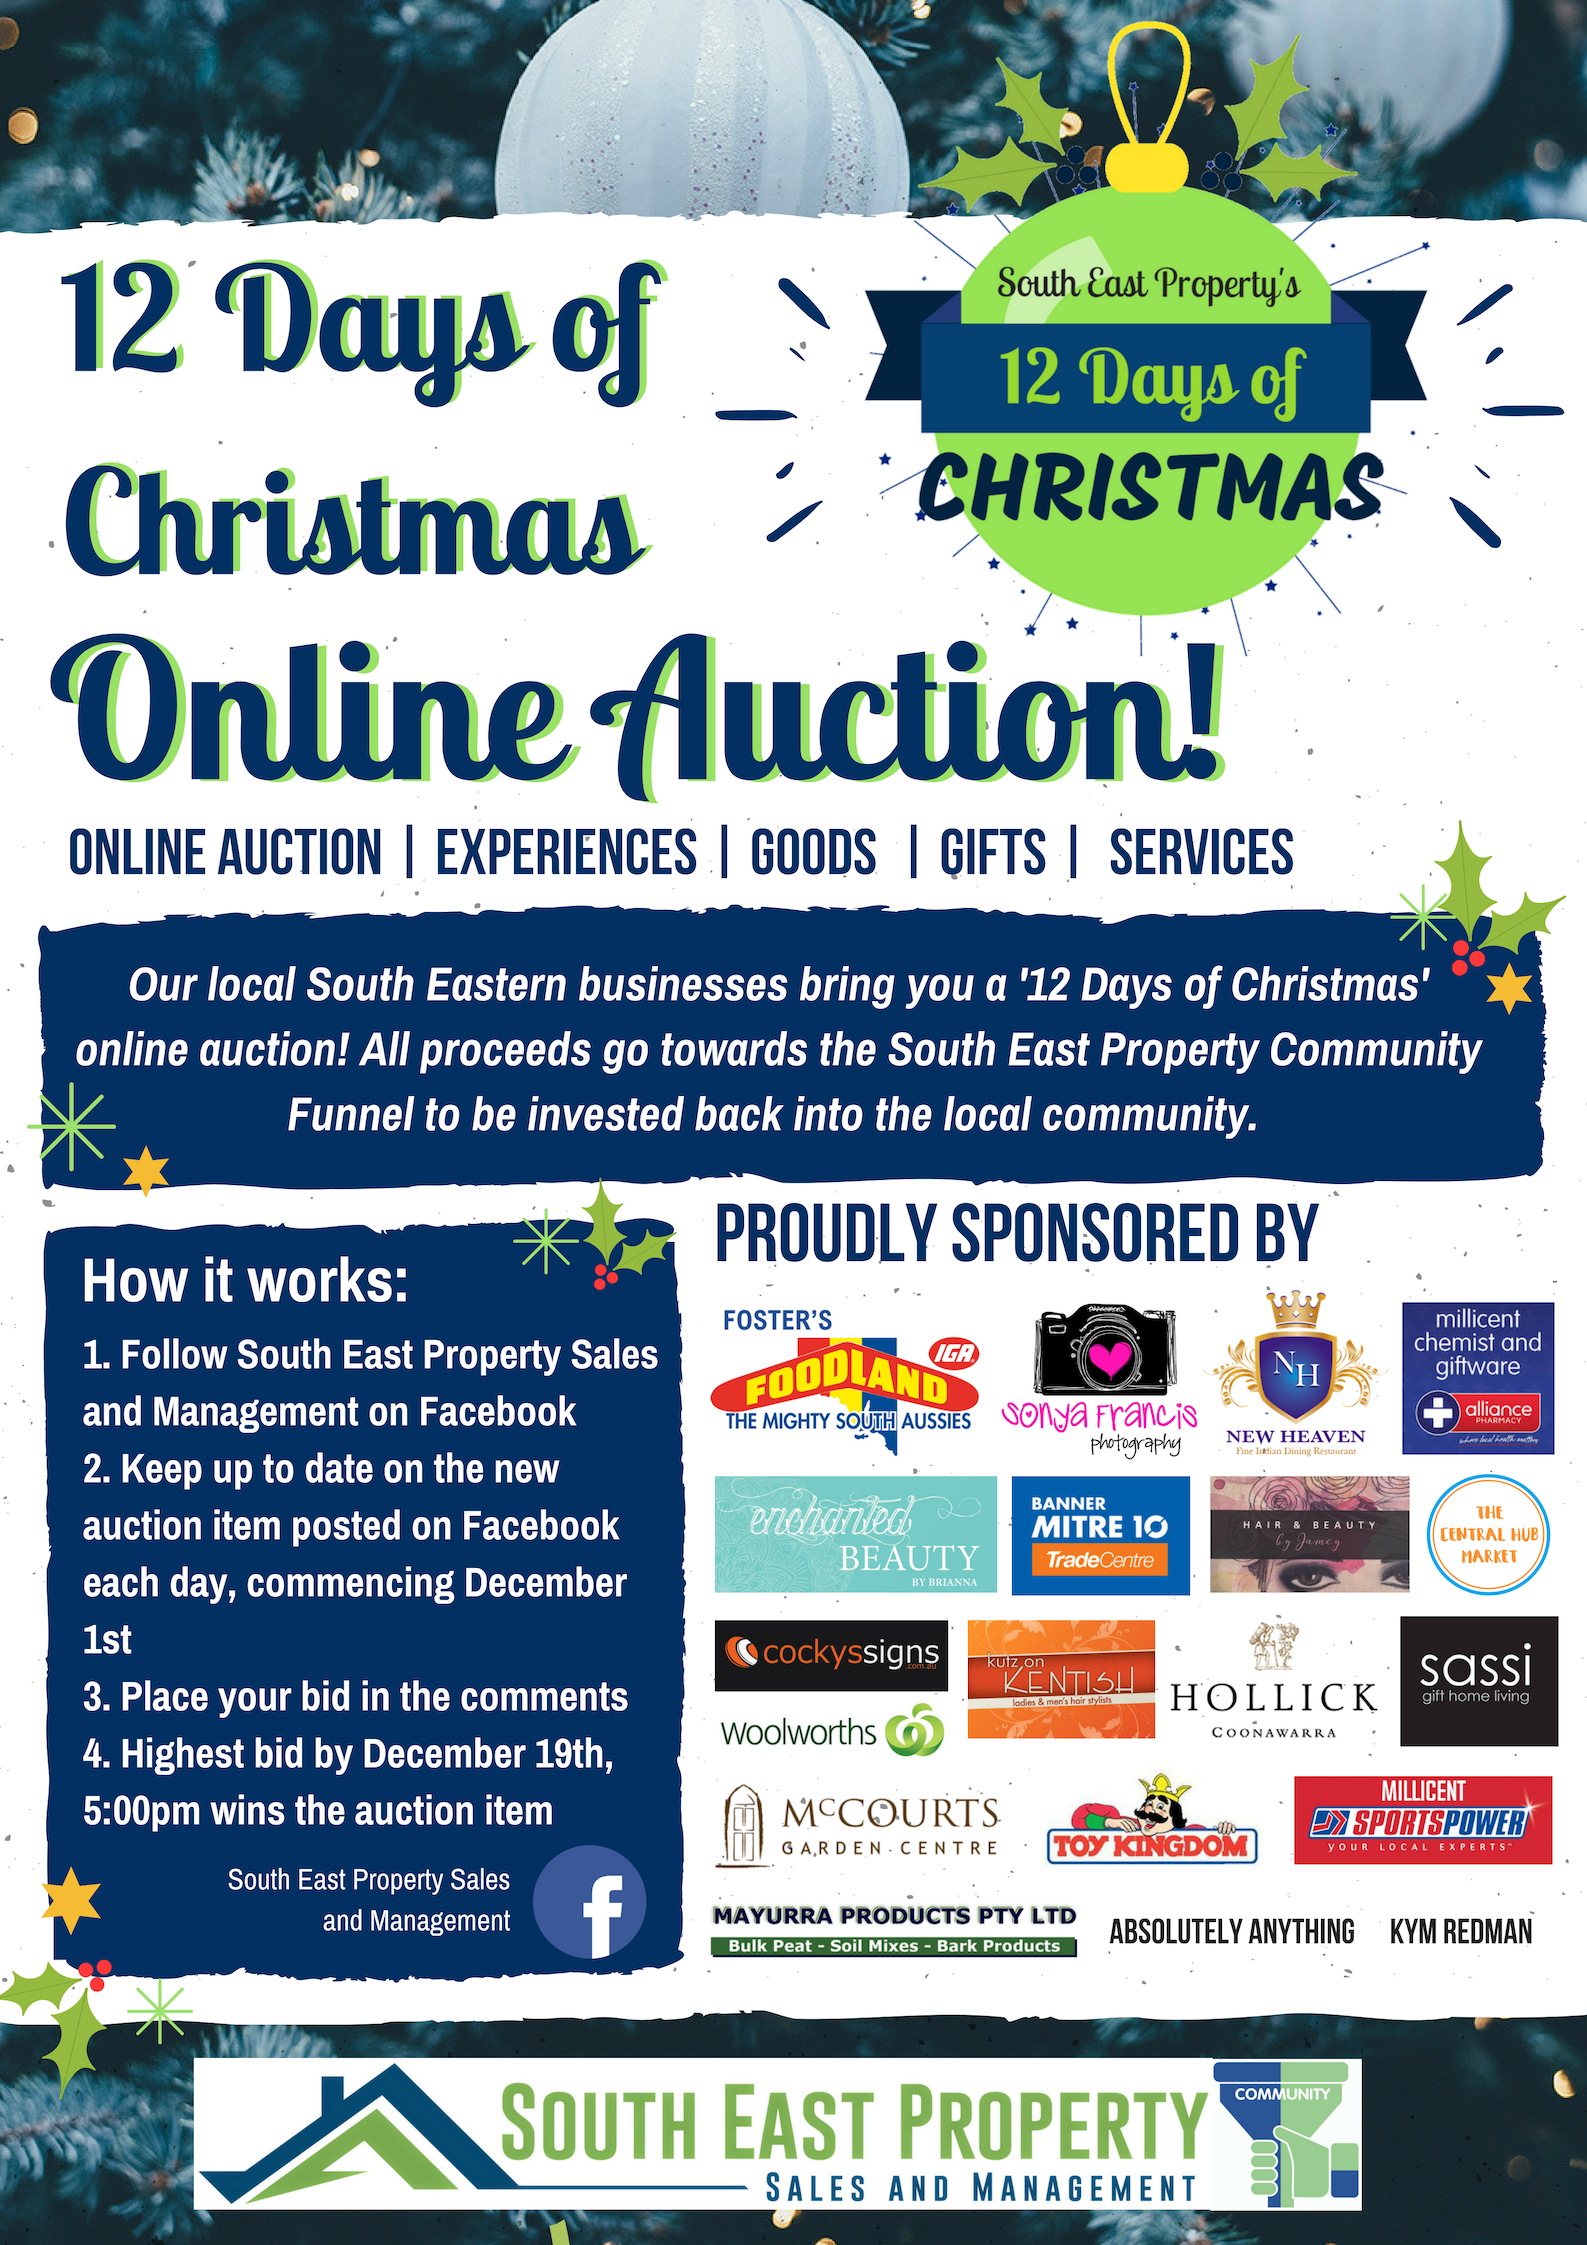 12 Days of Christmas Online Auction